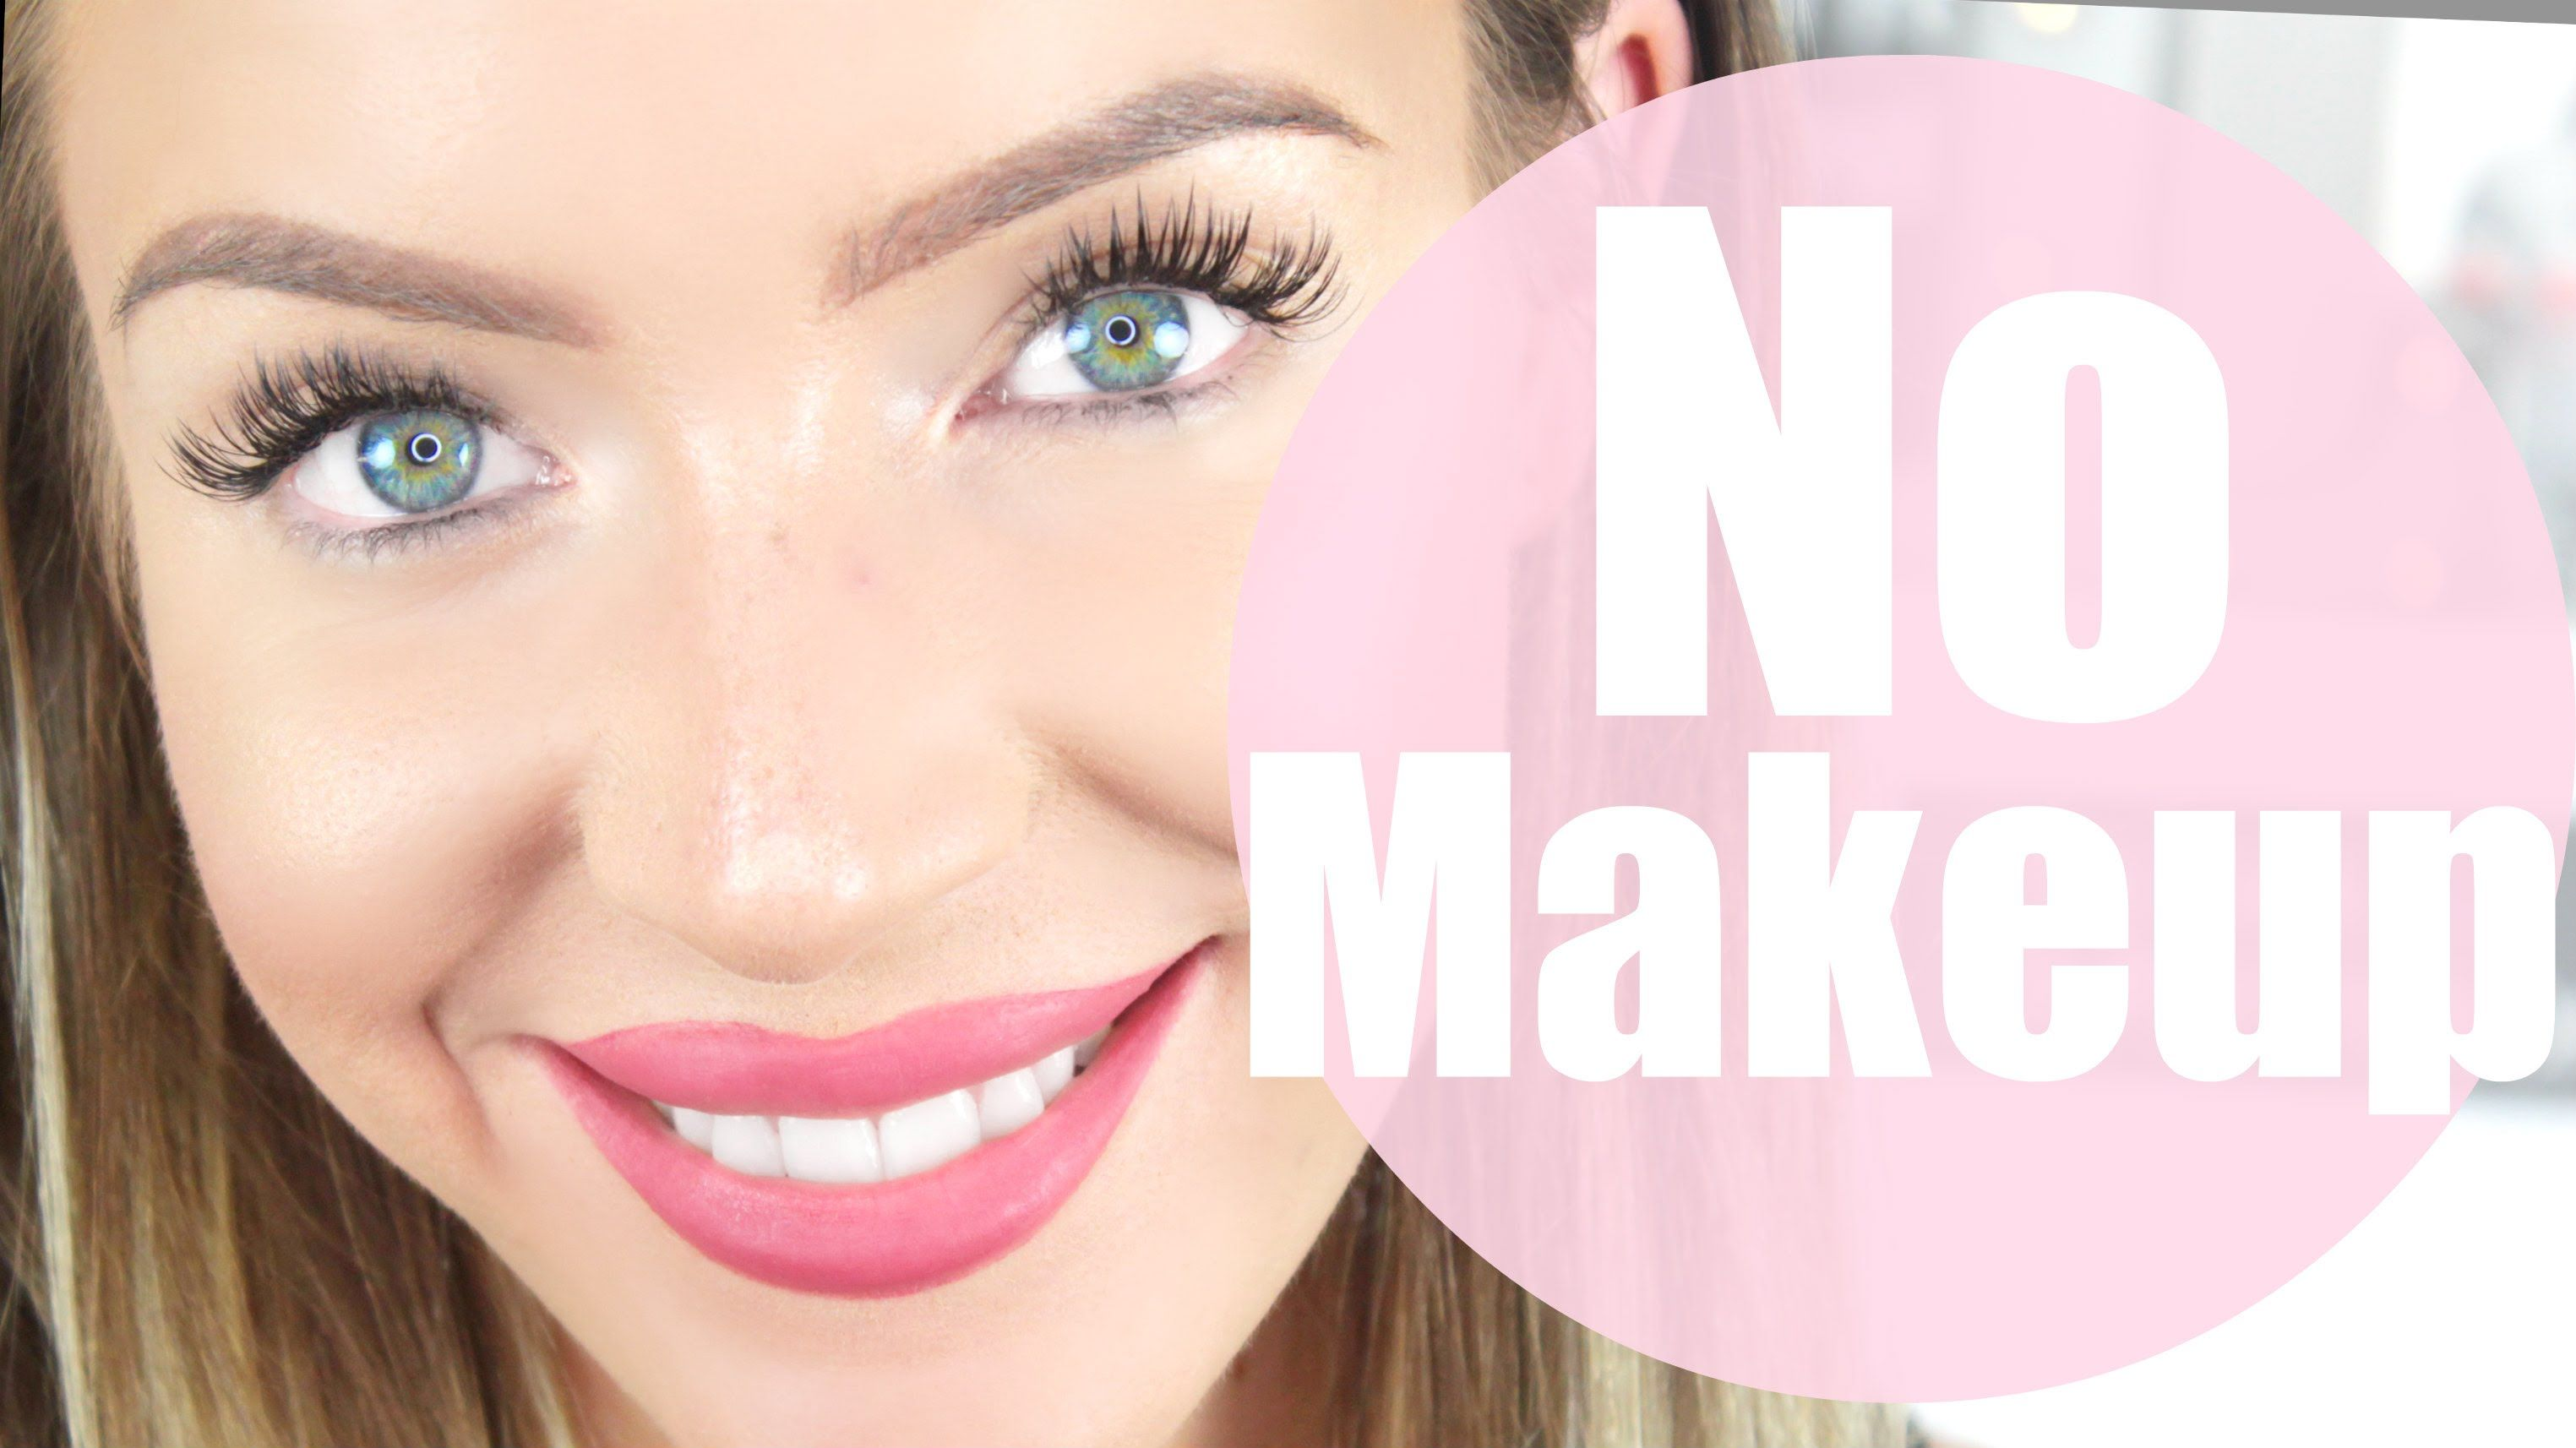 How to even out your eyelids without surgery youtube - How To Look Pretty With No Makeup Makeup Tutorial Stephanie Lange Youtube